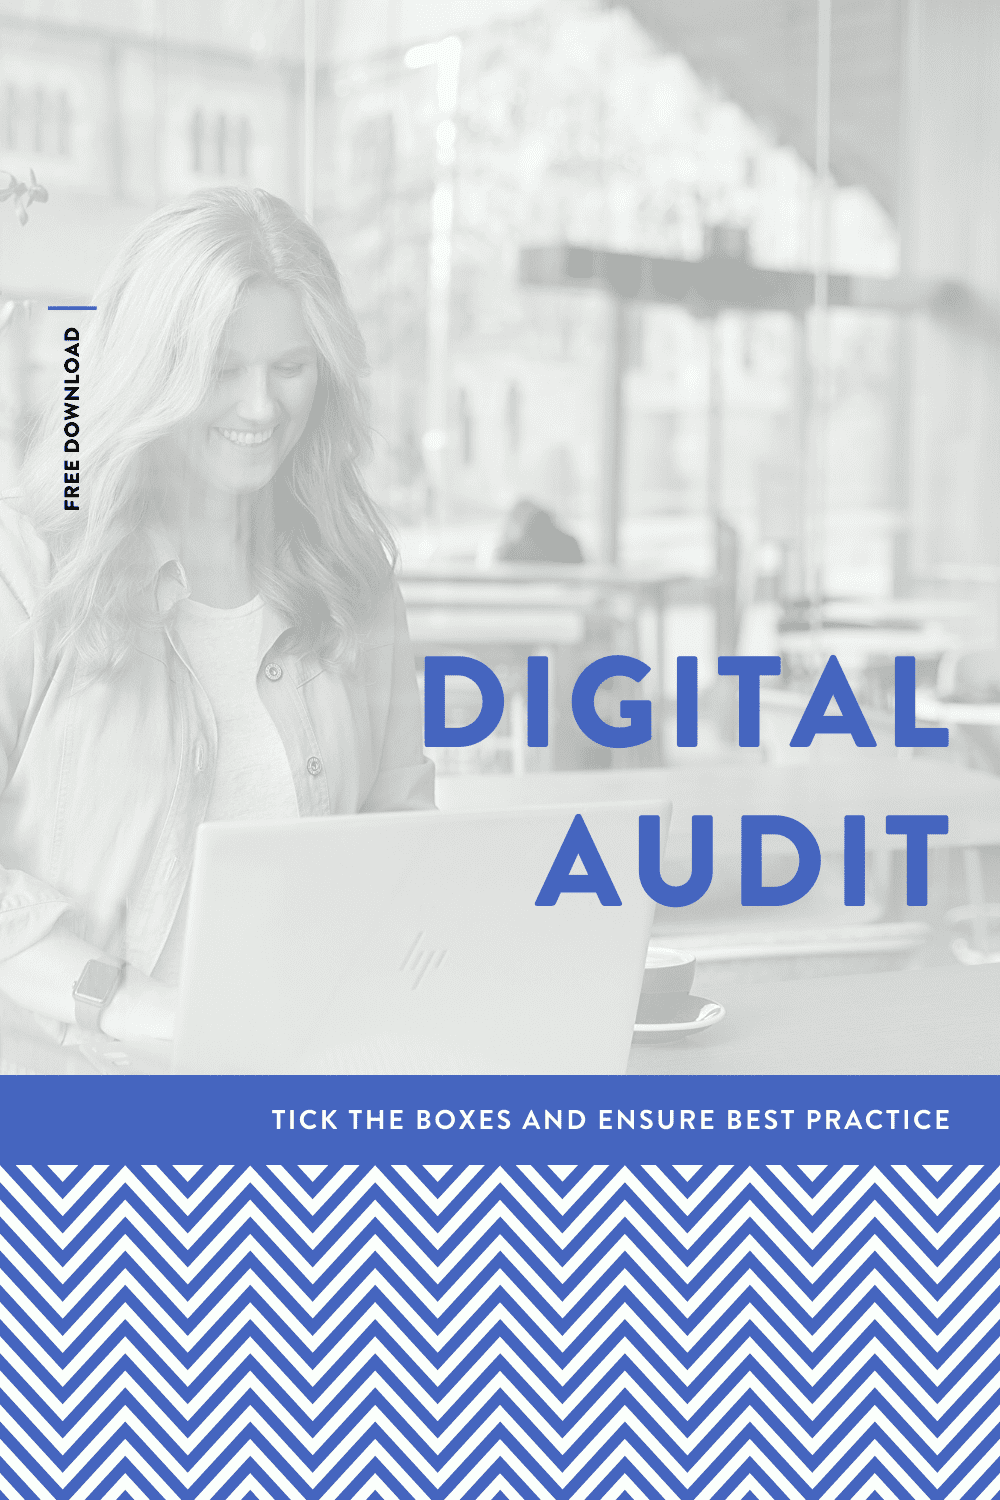 Digital Marketing Self-Audit Checklist // FREE DOWNLOAD